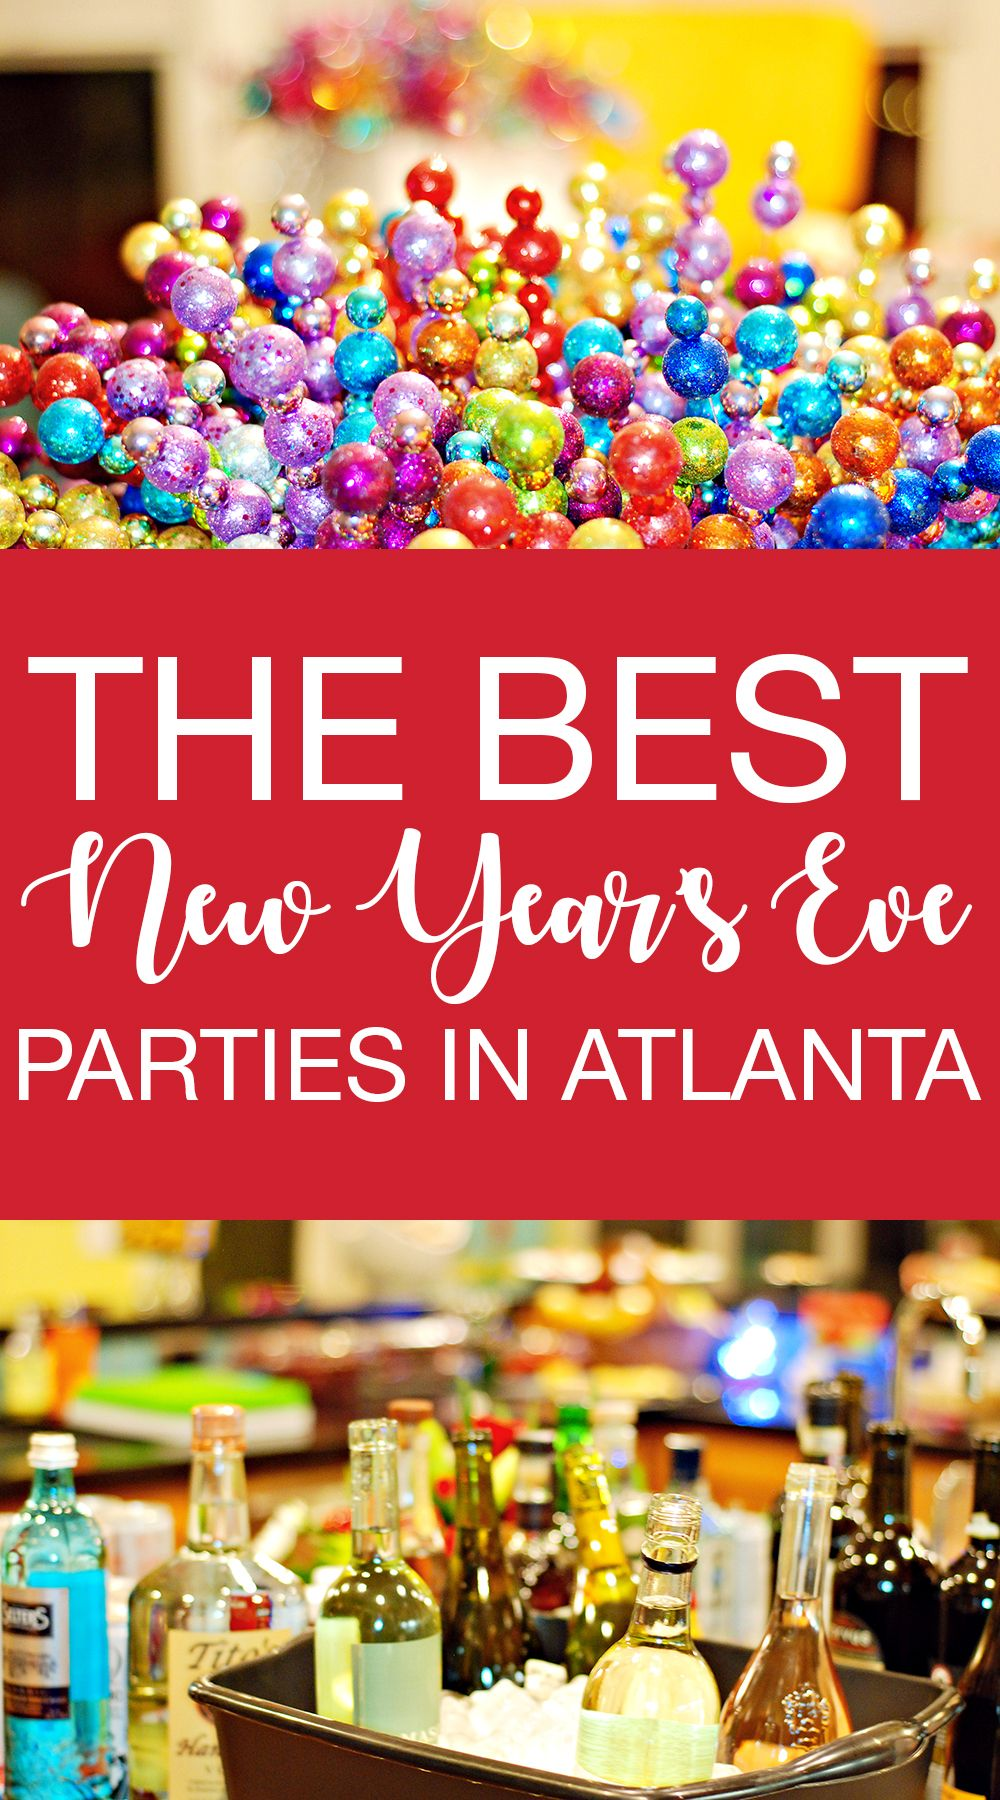 The Best New Year's Eve Parties in New years eve party